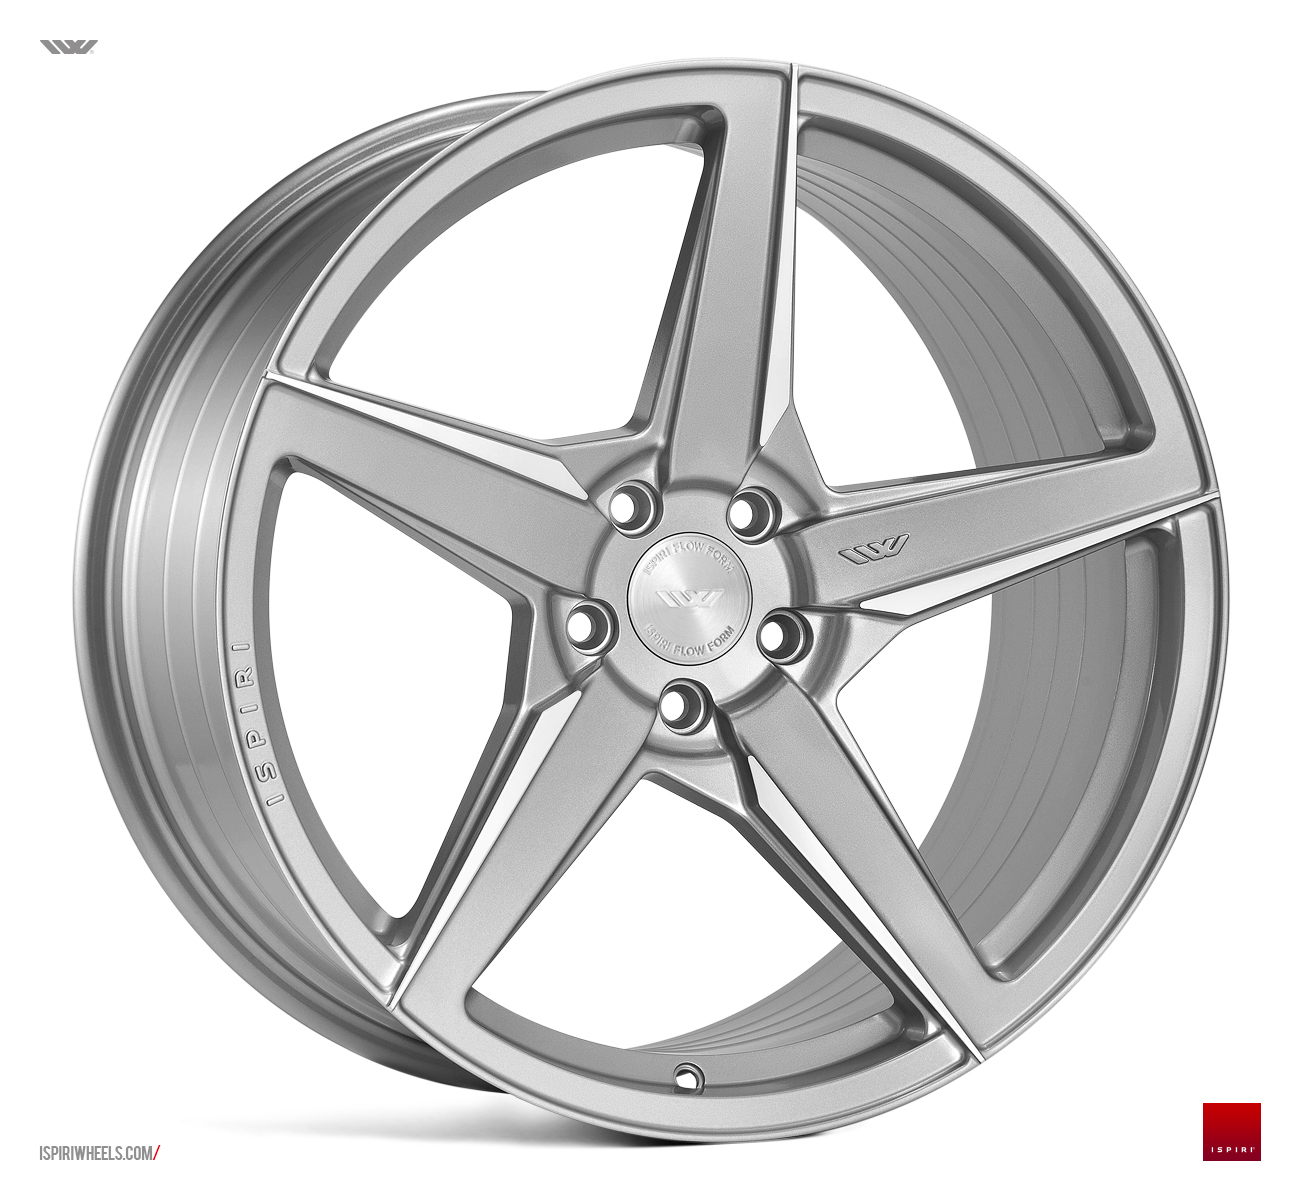 "NEW 21"" ISPIRI FFR5 5 SPOKE ALLOYS IN PURE SILVER BRUSHED, WITH WIDER 10.5"" REAR"